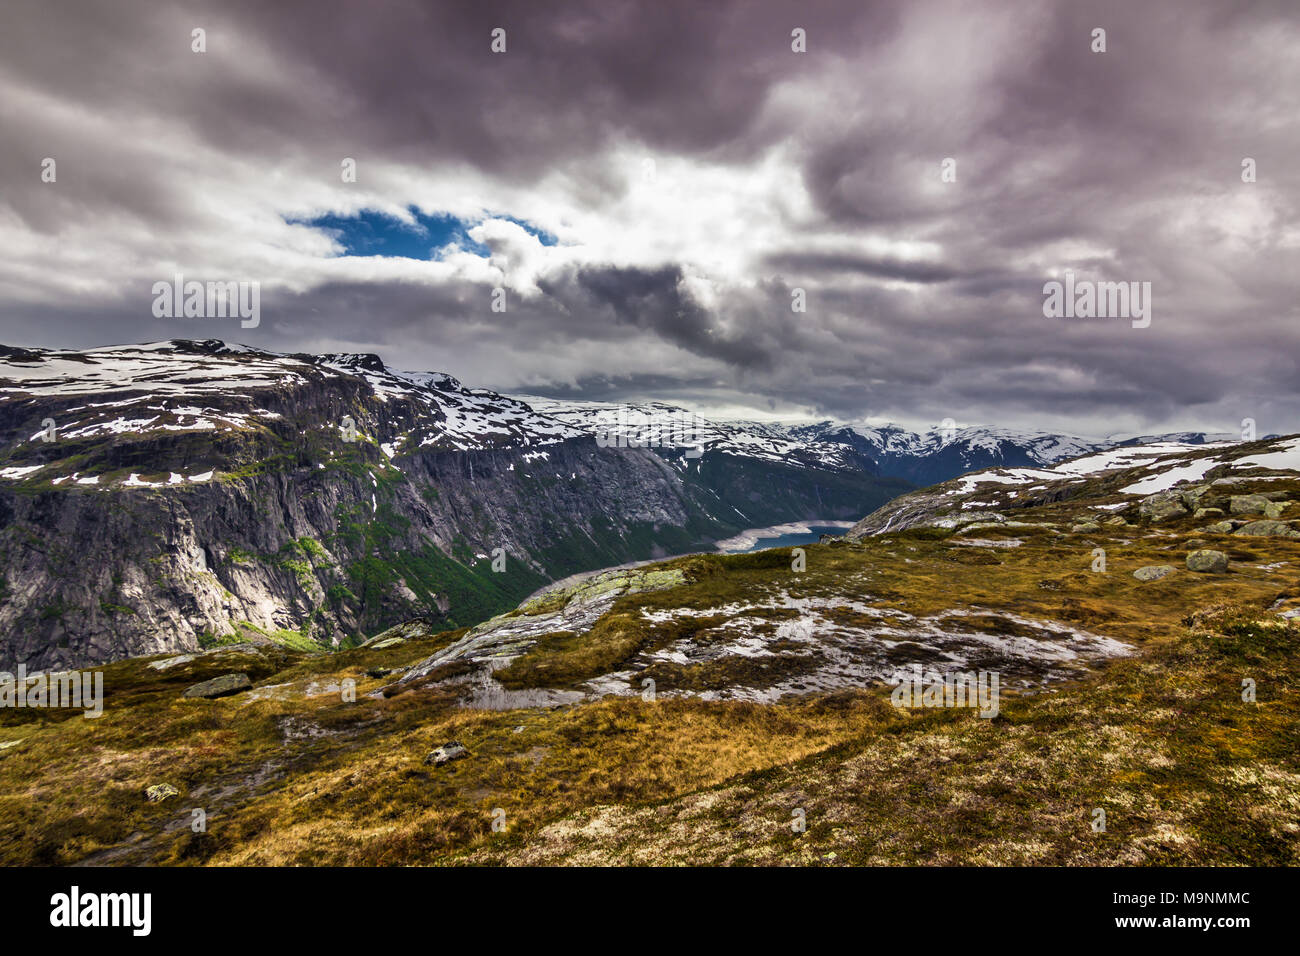 July 22, 2015: Panorama of a fjord on the way to Trolltunga, Norway - Stock Image